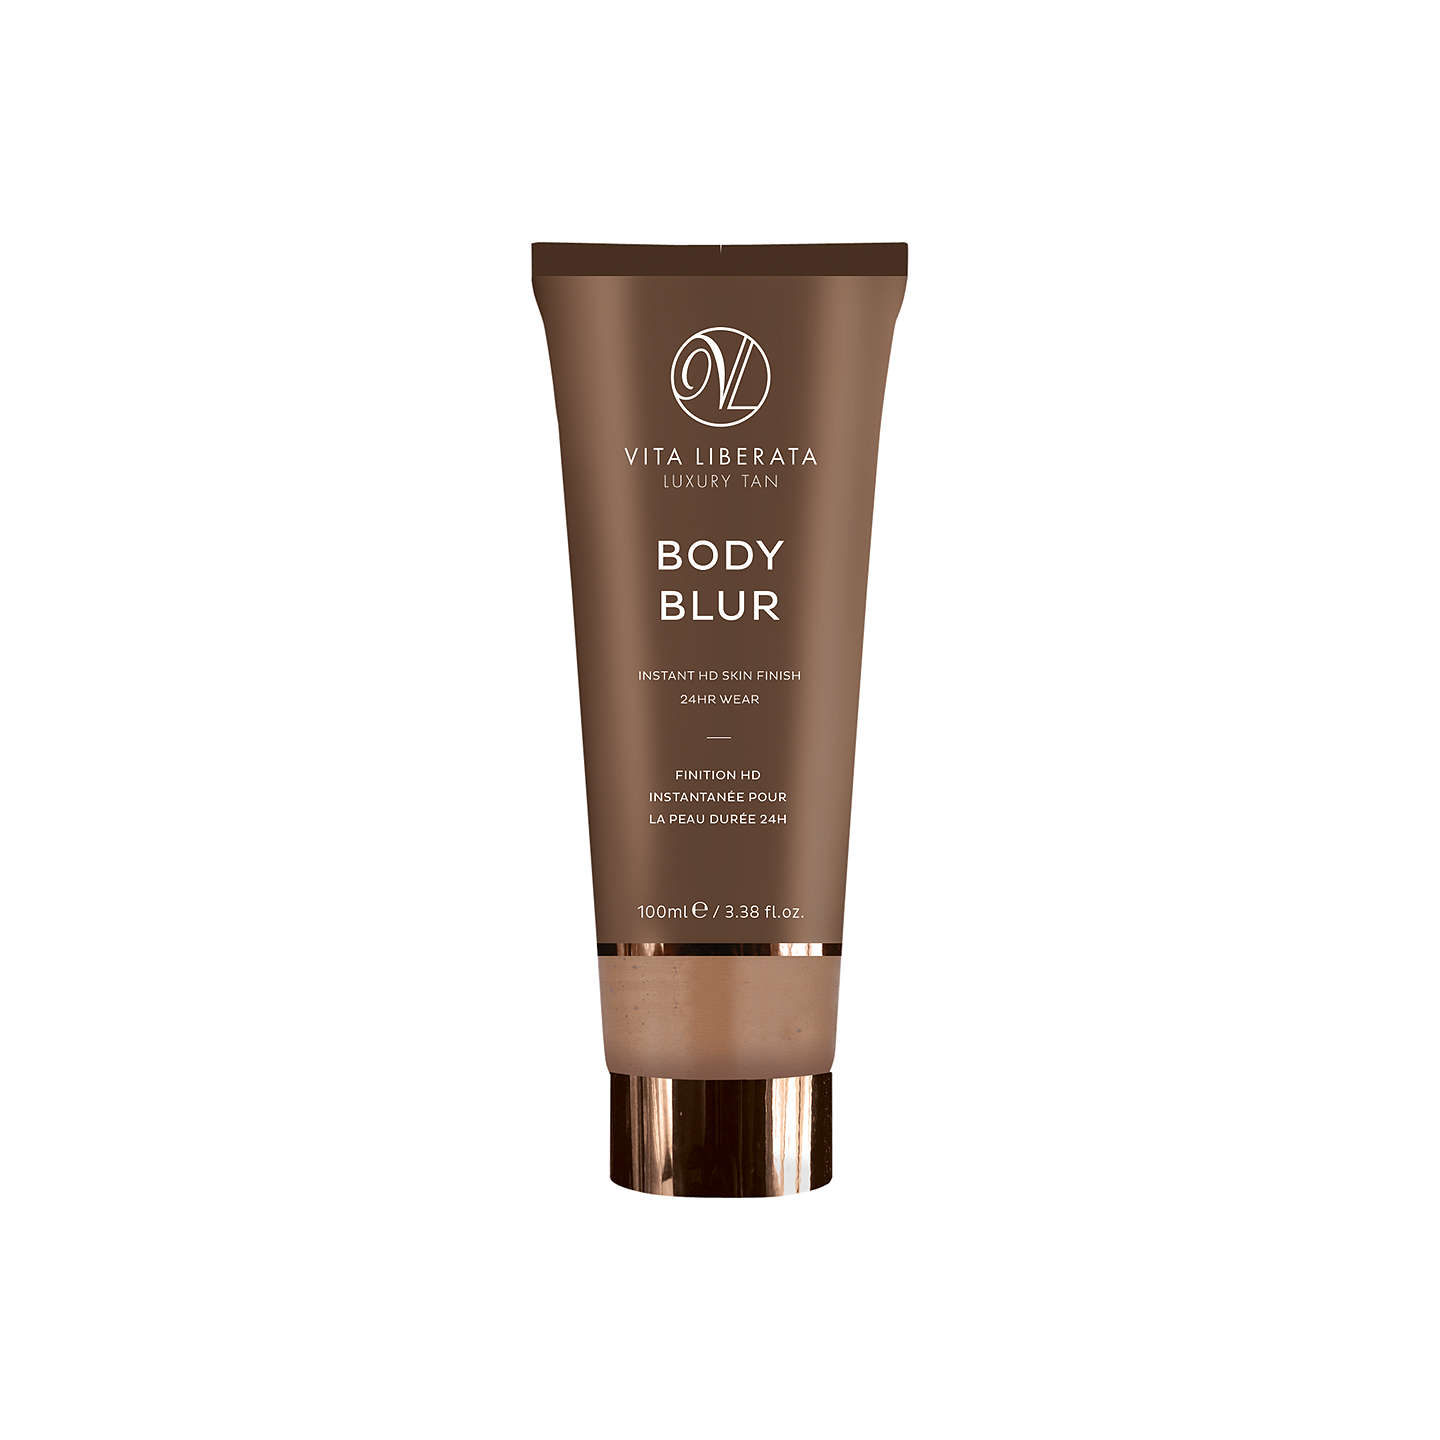 BuyVita Liberata Body Blur Instant HD Skin Finish, 100ml, Latte Online at johnlewis.com